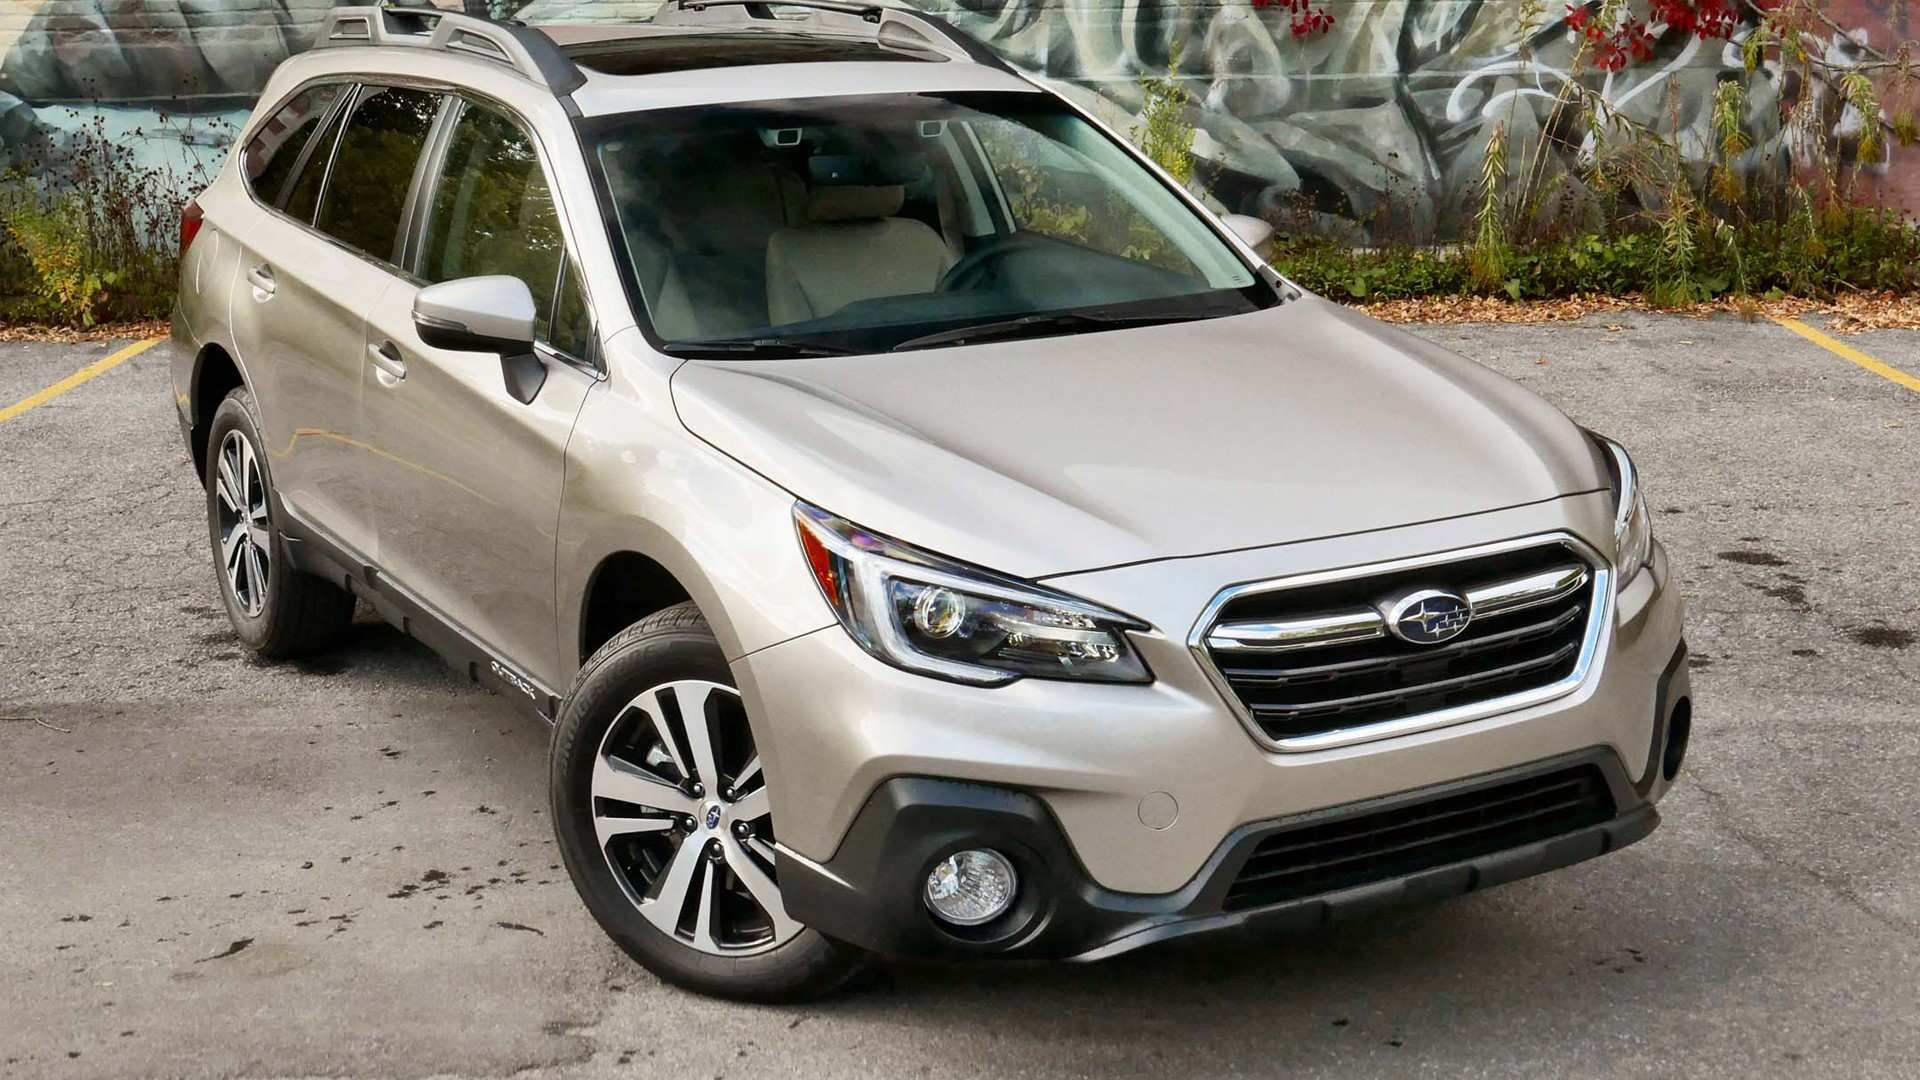 32 New 2019 Subaru Outback Next Generation Redesign and Concept